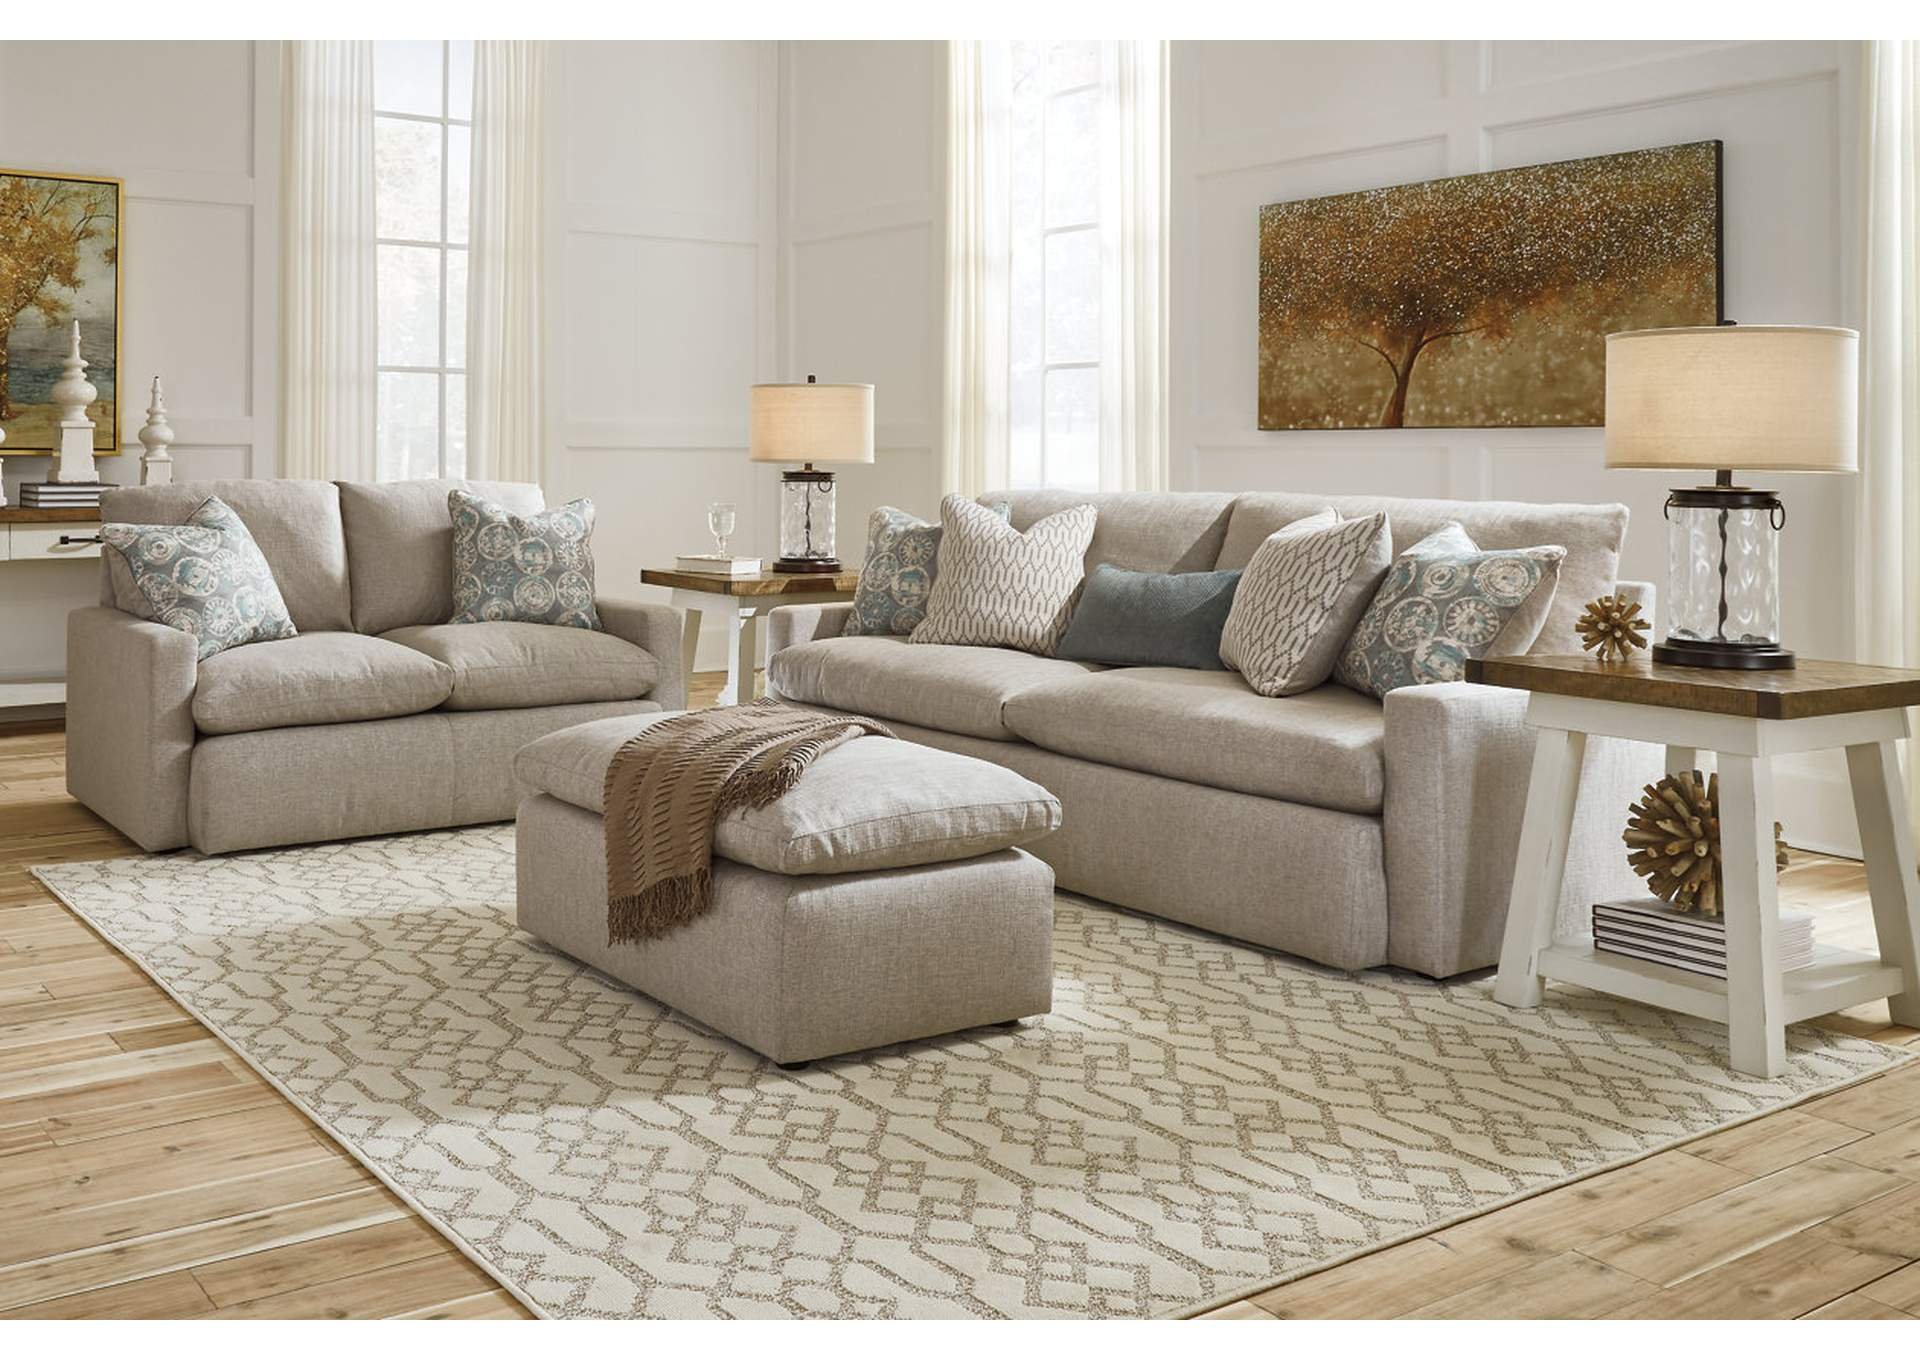 Melilla Ash Oversized Accent Ottoman,Signature Design By Ashley